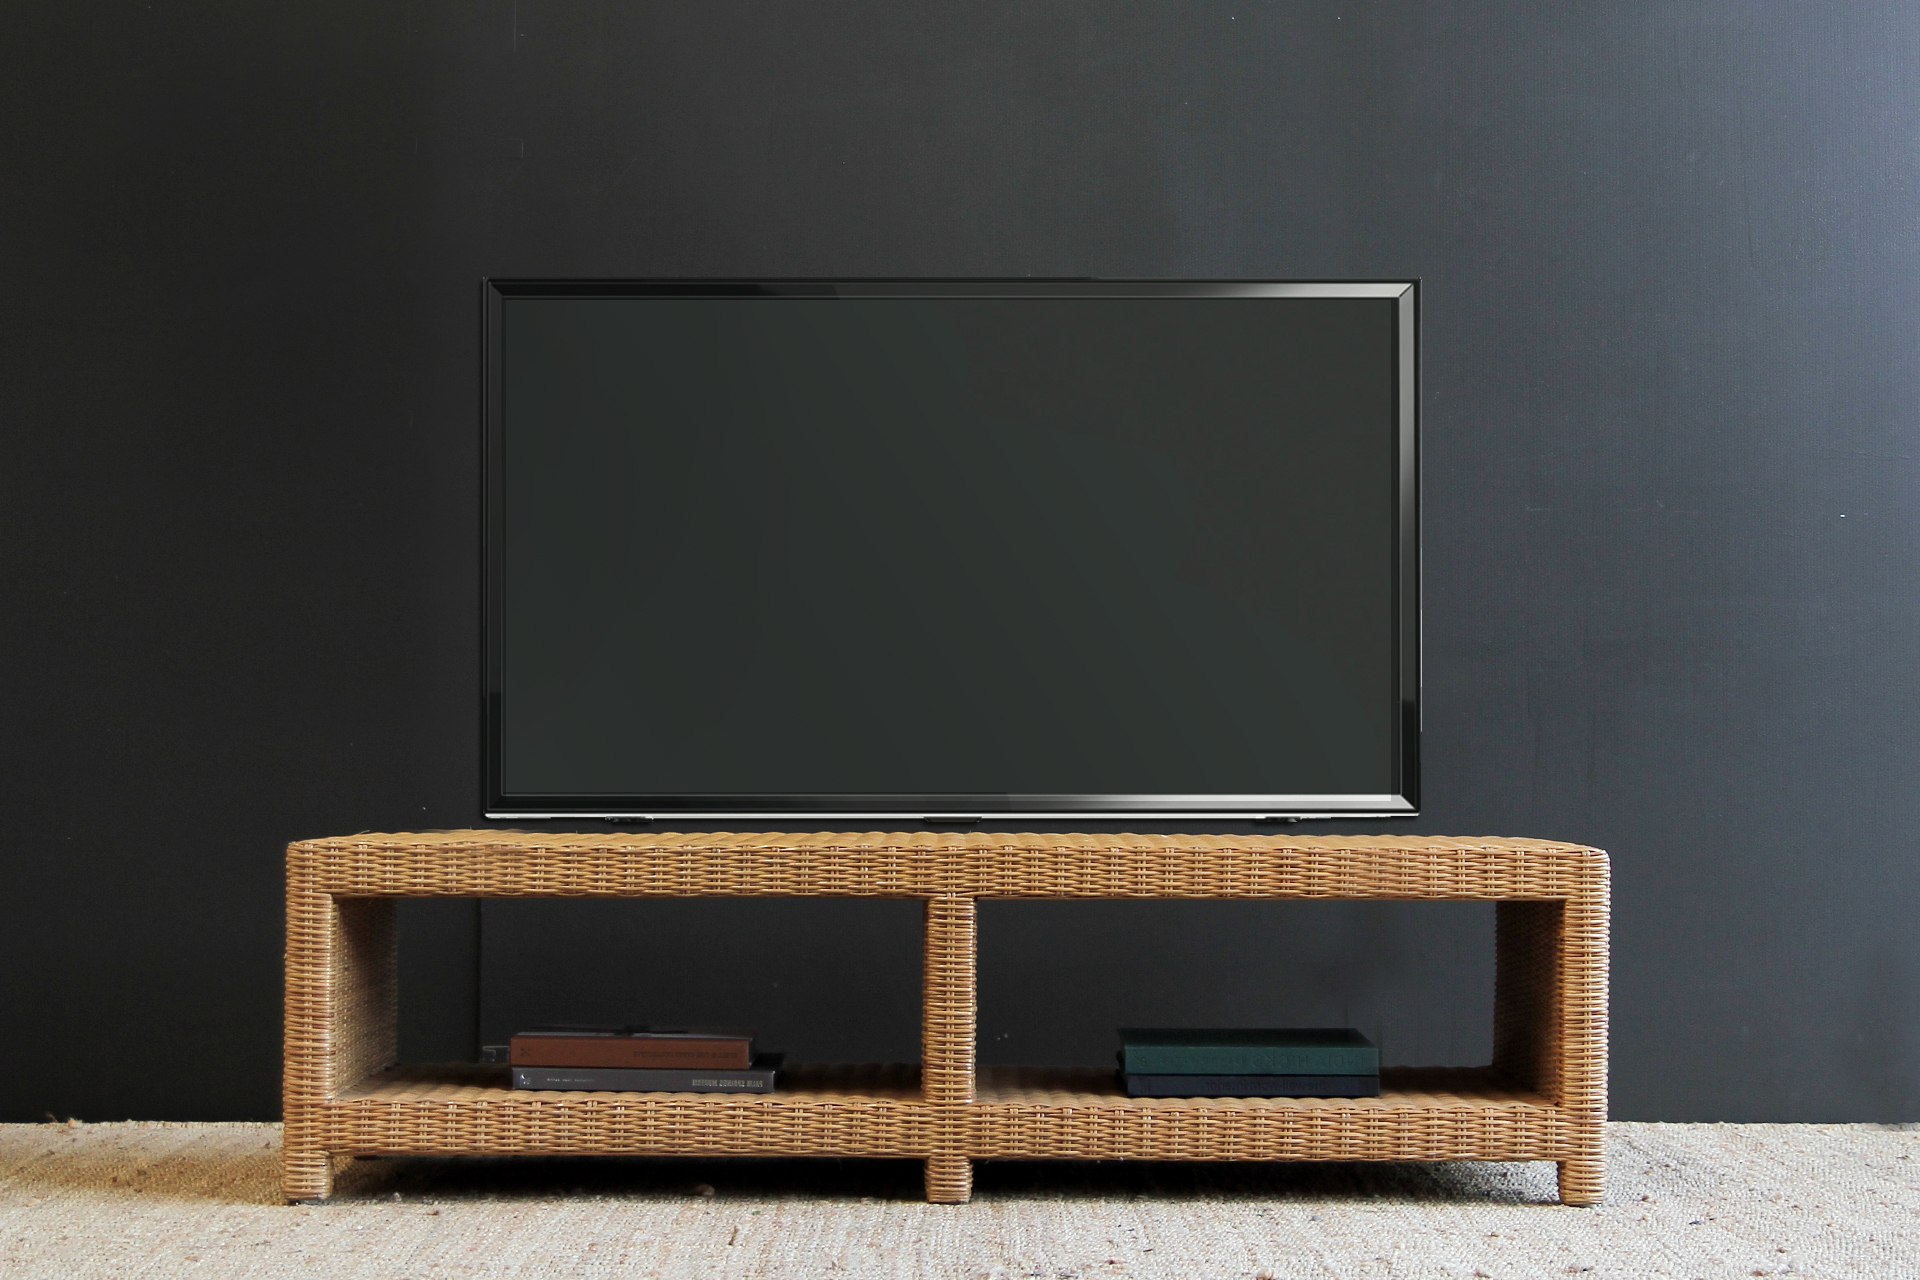 Tampa Low Line Tv Console | Naturally Cane Rattan And Wicker Furniture Regarding Natural Cane Media Console Tables (View 19 of 20)